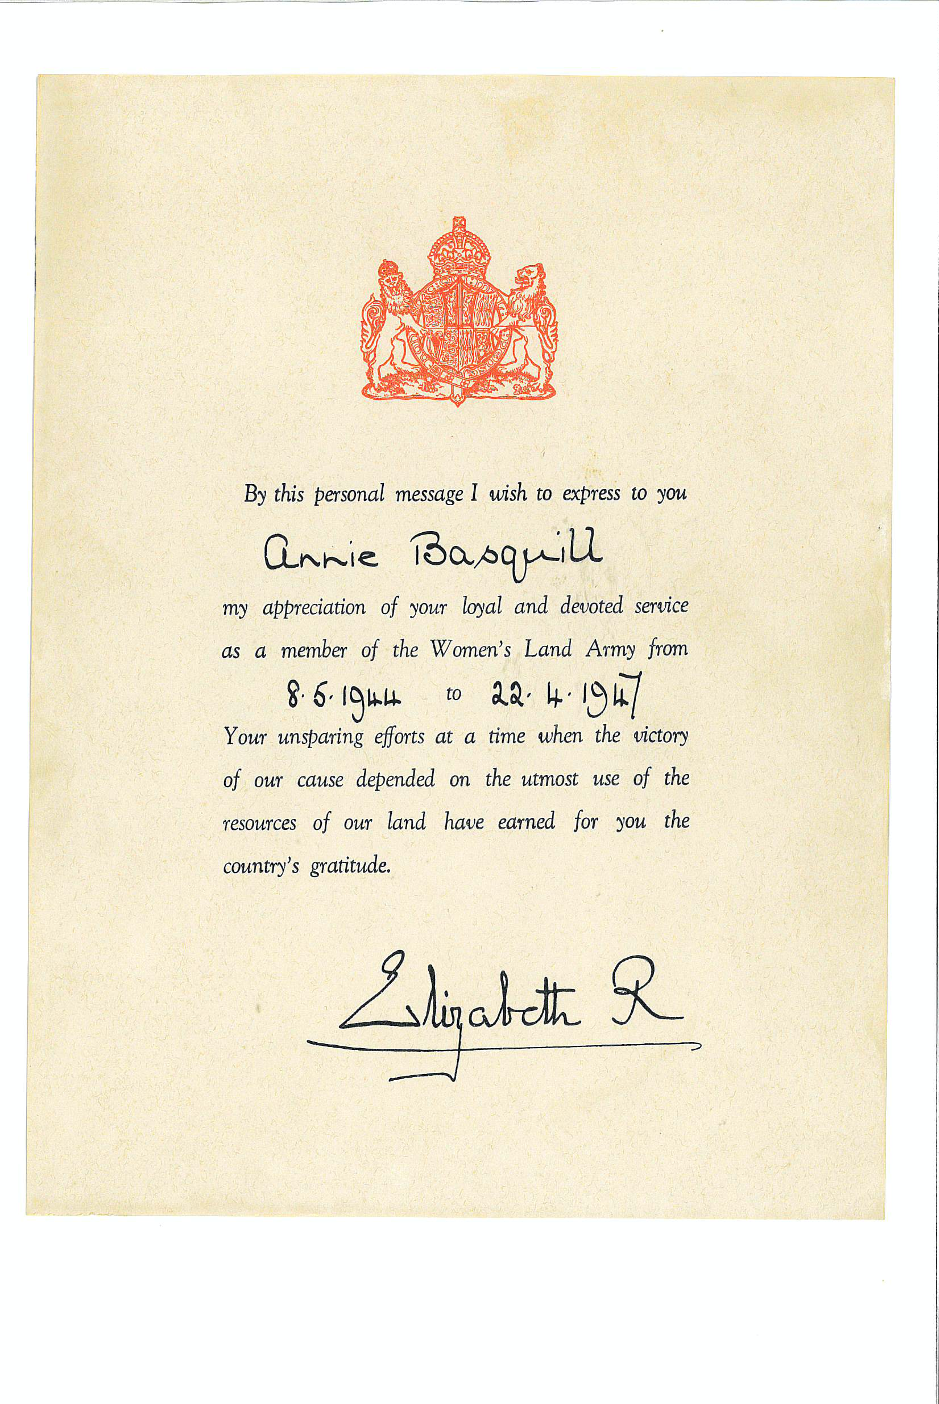 Annie Popplewell (née Basquill) Certificate